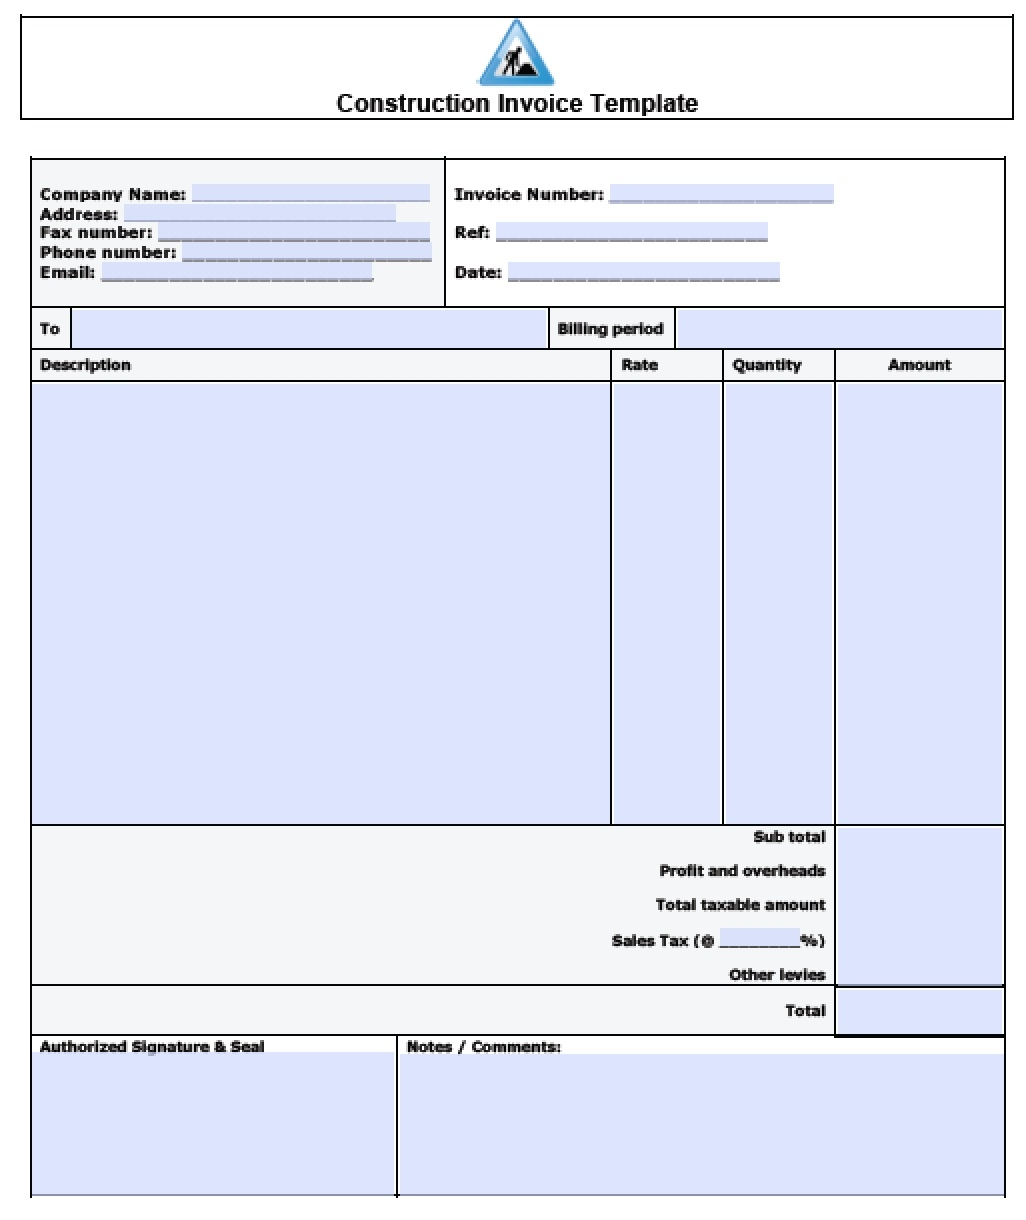 construction invoice template free construction invoice template excel pdf word doc 1026 X 1220